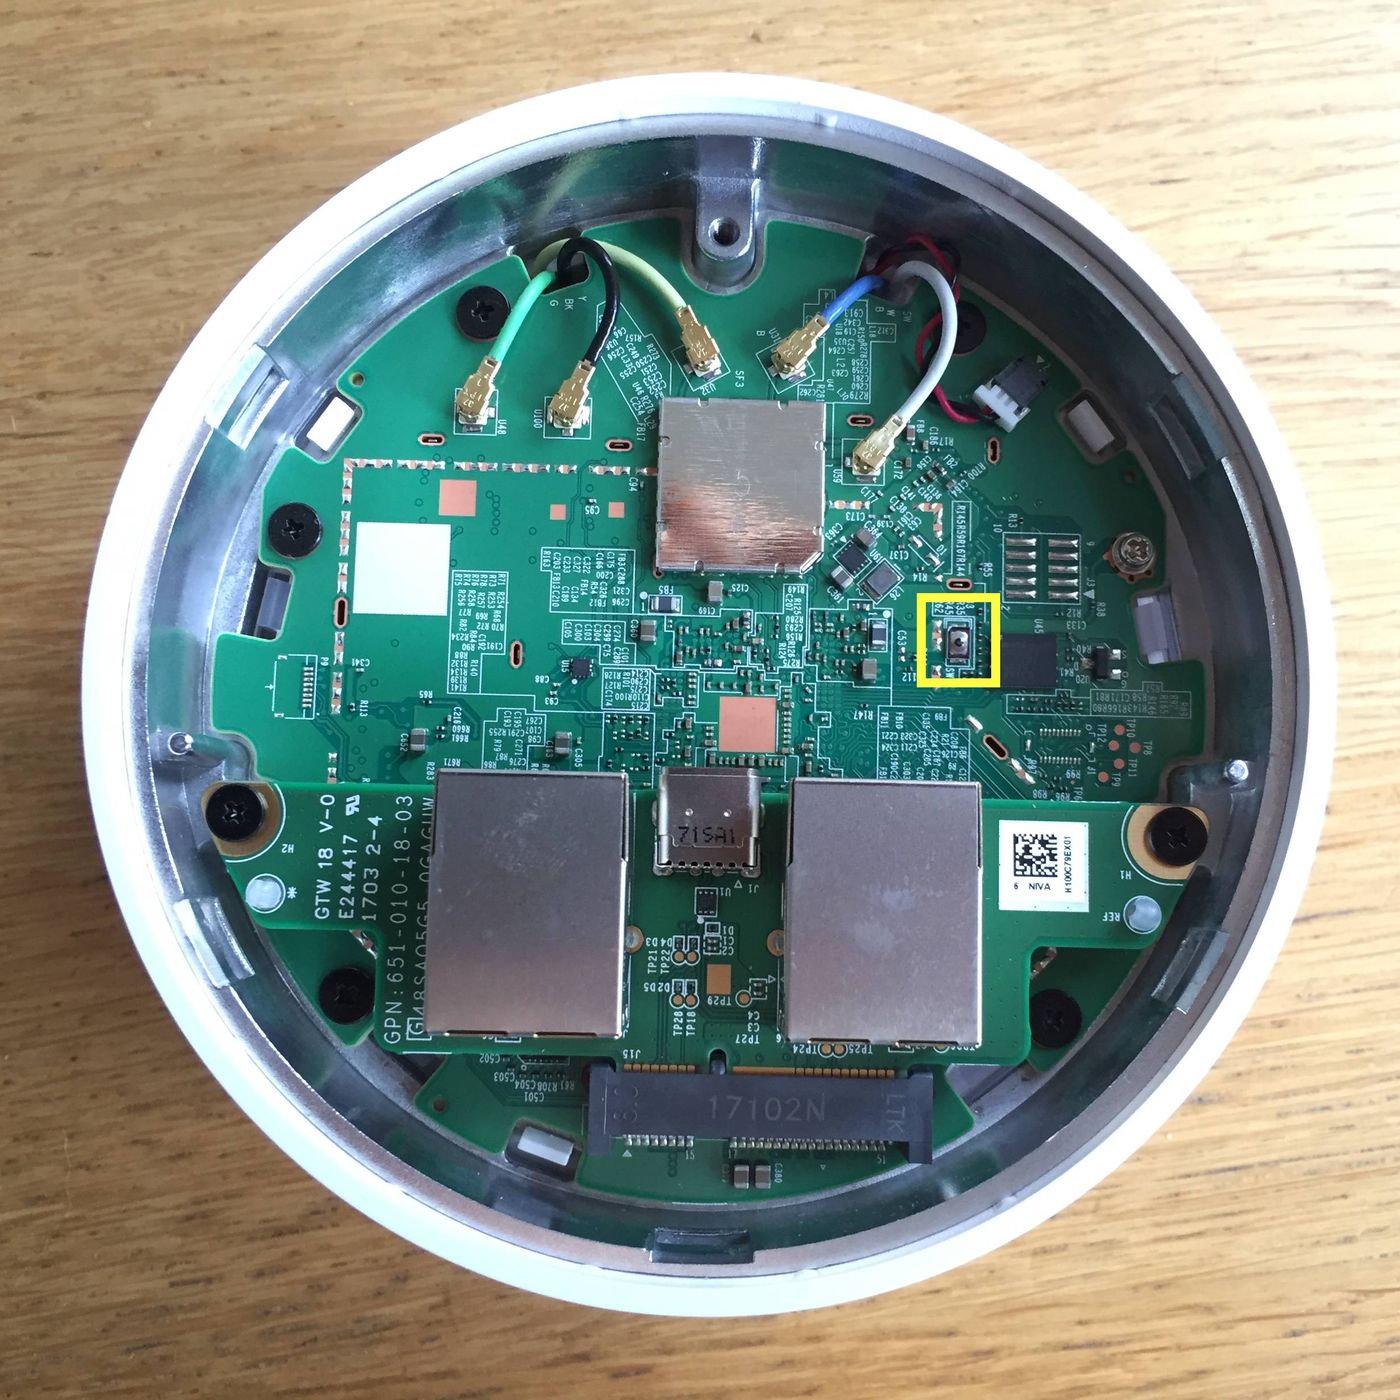 You Can Root Your Google Wifi Router But Youll Need A Screwdriver And Components Used In Basic Electronics Hacks Mods Circuitry The Verge